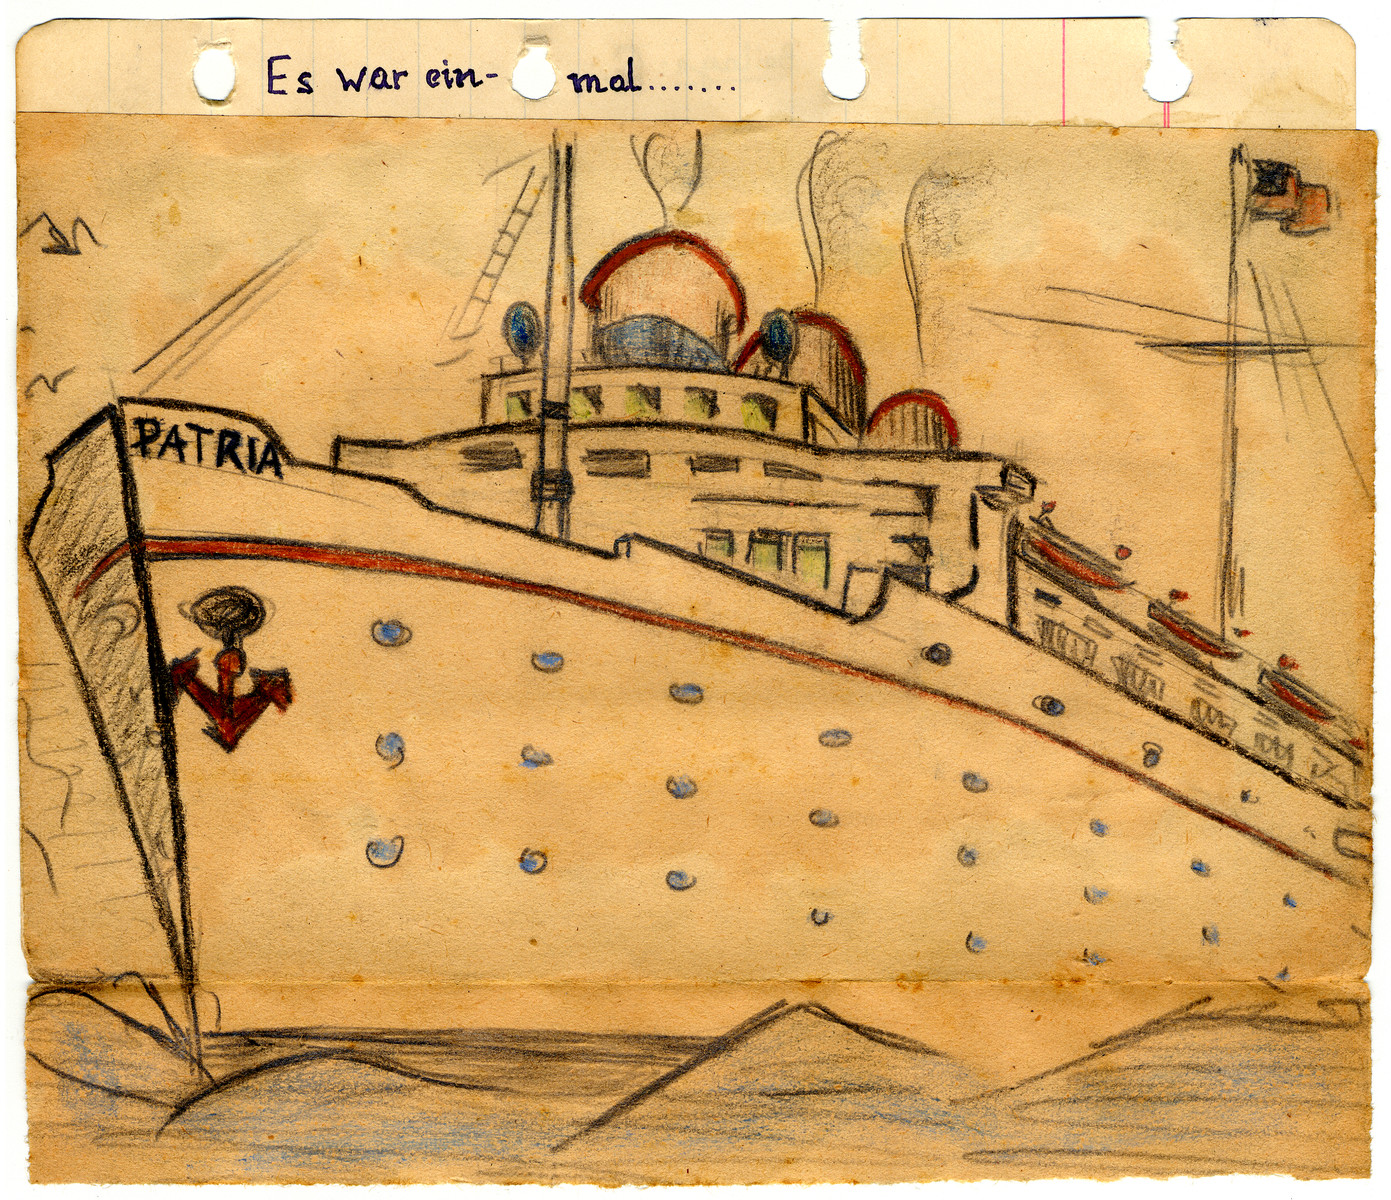 Drawing of the Patria (probably drawn by a friend) and part of the illustrated diary of Egon Weiss which he compiled during and immediately after his detention in the Athlit internment camp.